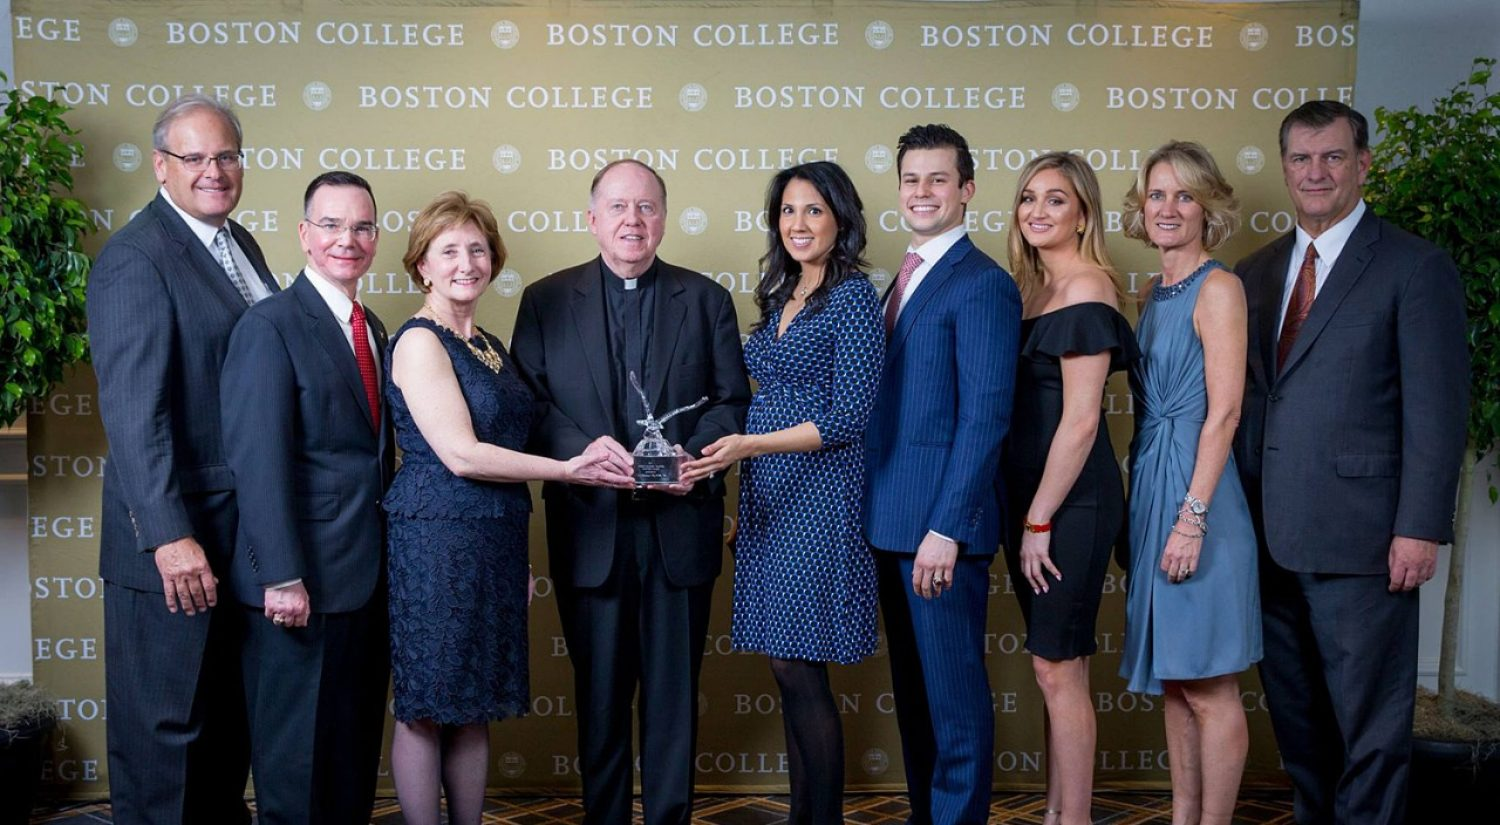 2017 Distinguished Alumni Award recipients with University President William P. Leahy, S.J.